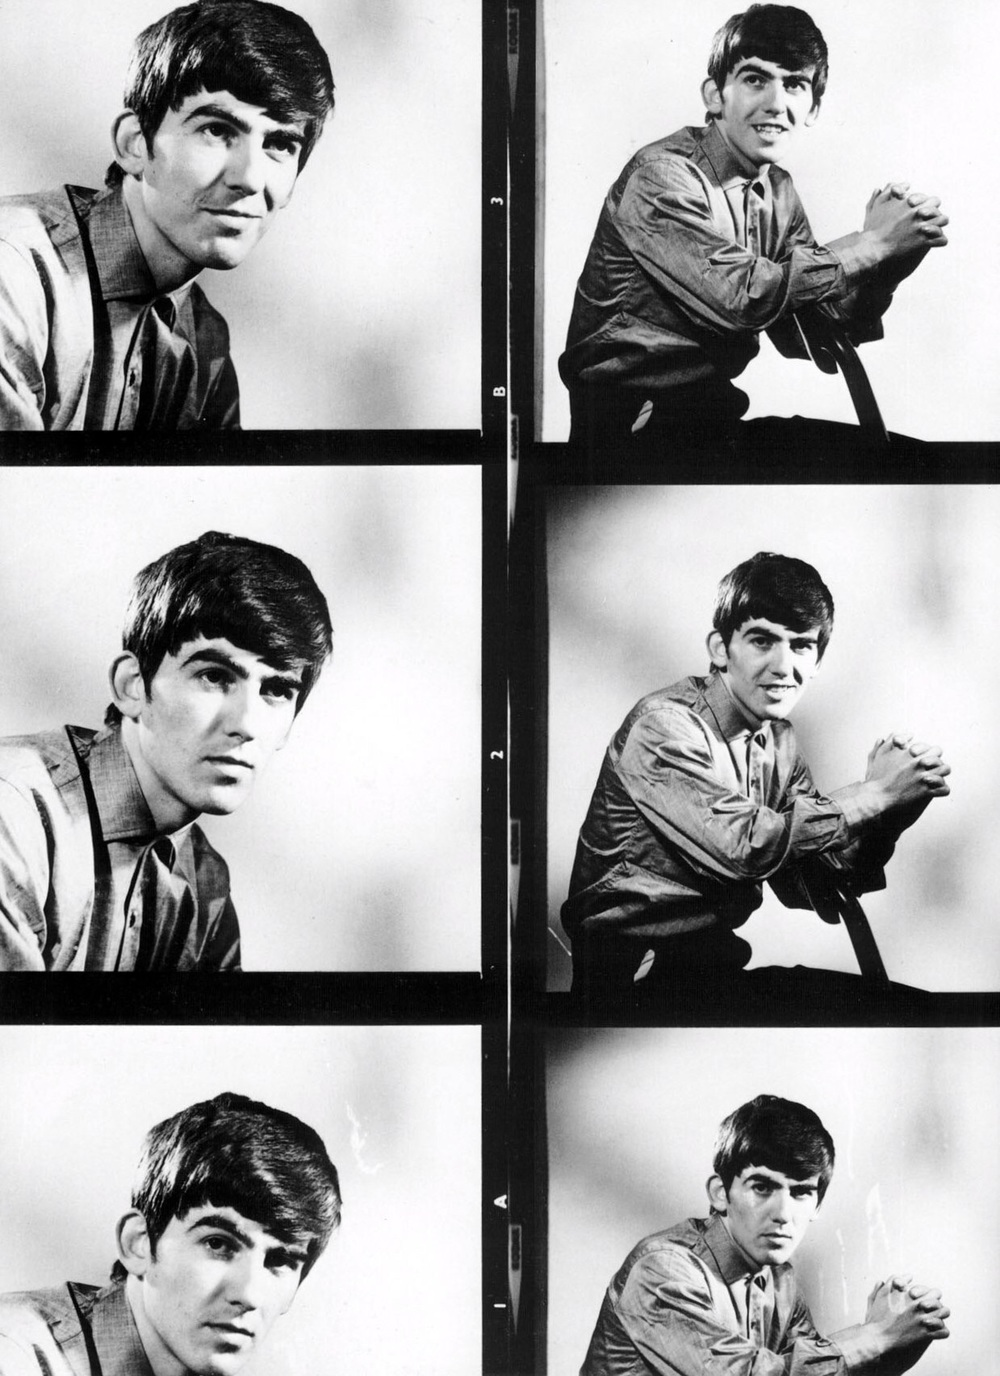 George Harrison photo shoot, 1963